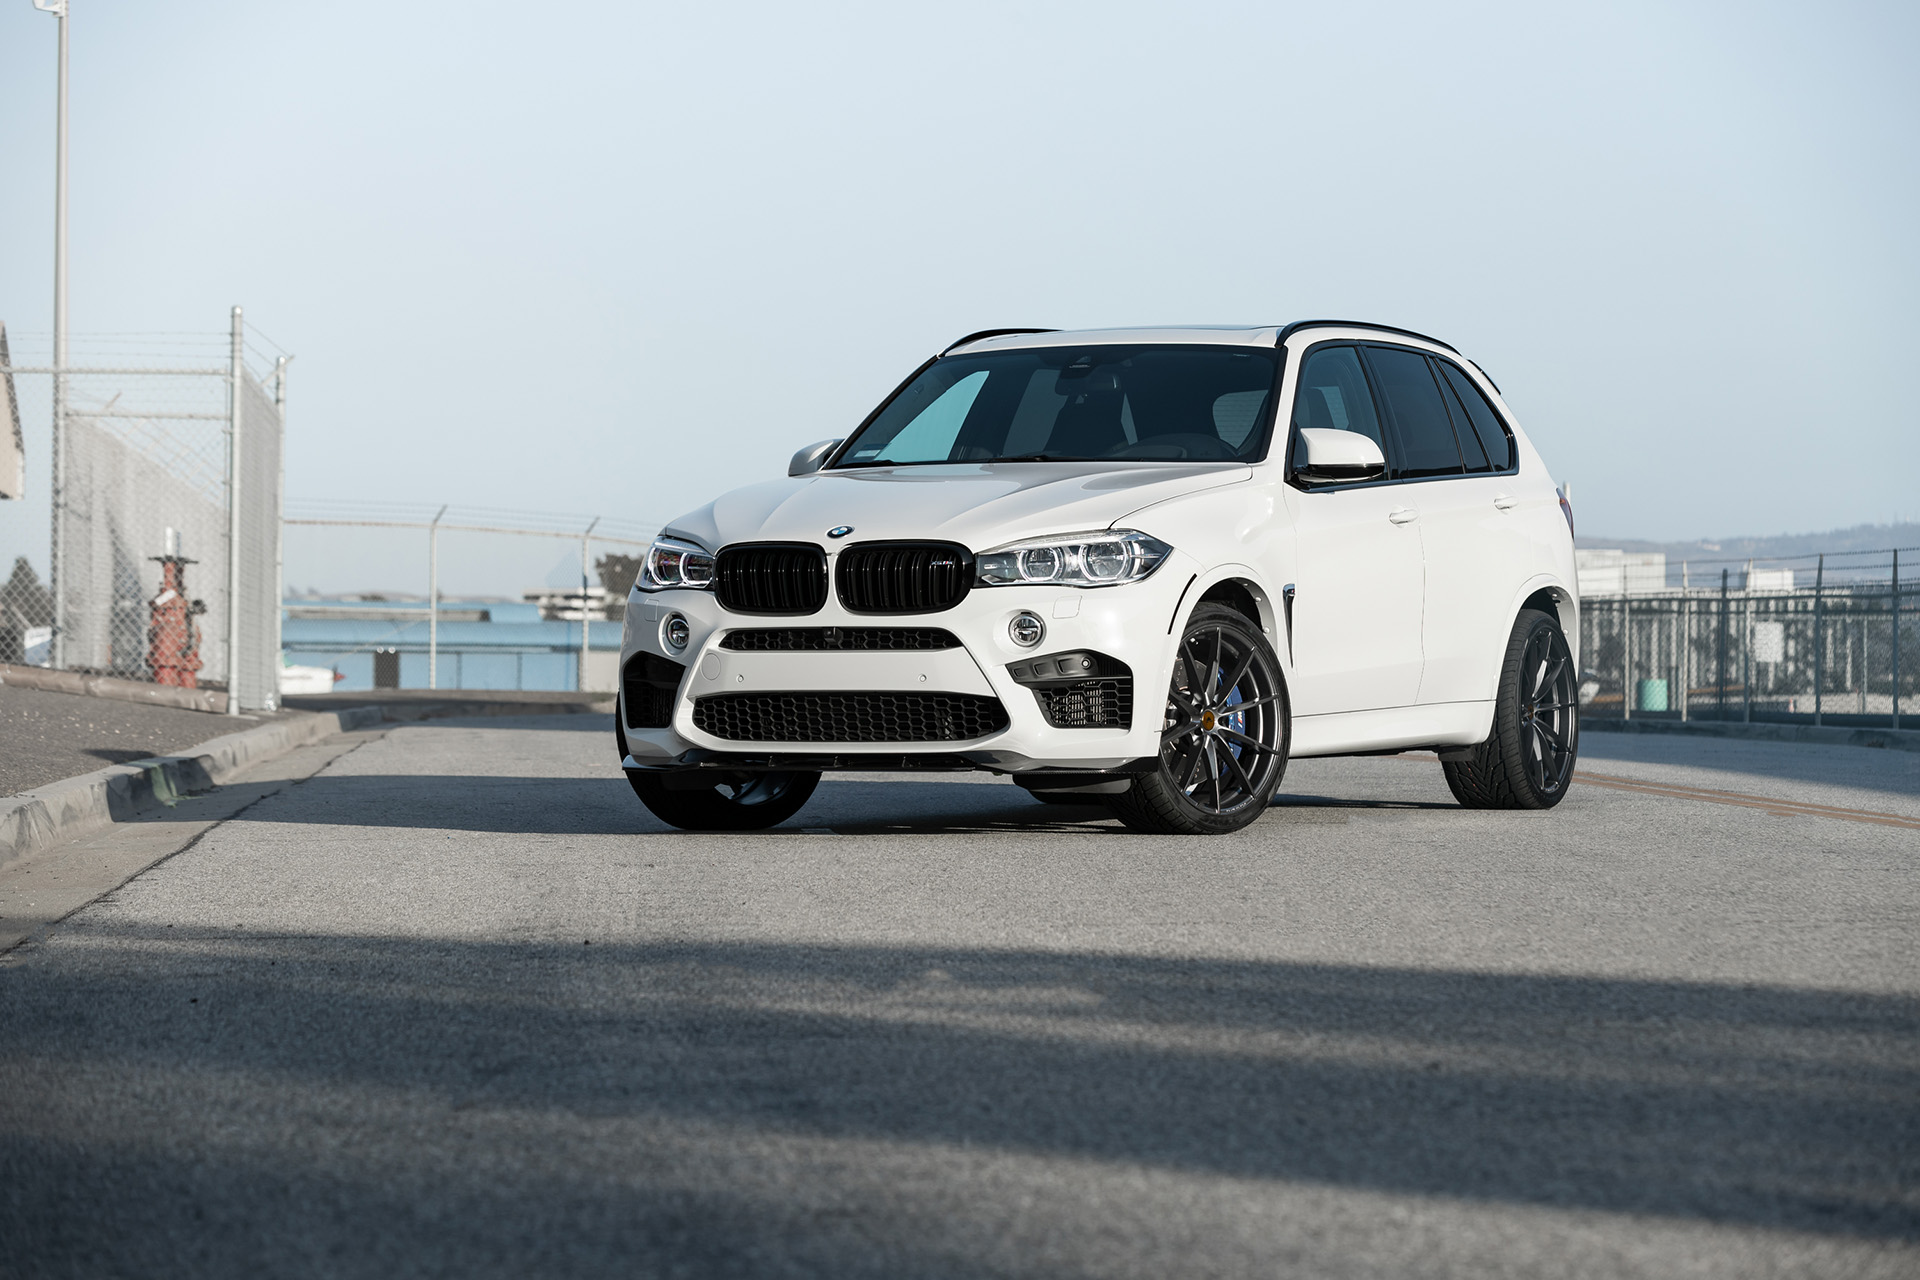 Video: BMW F90 M5 Drag Races F85 BMW X5 M with Obvious Results